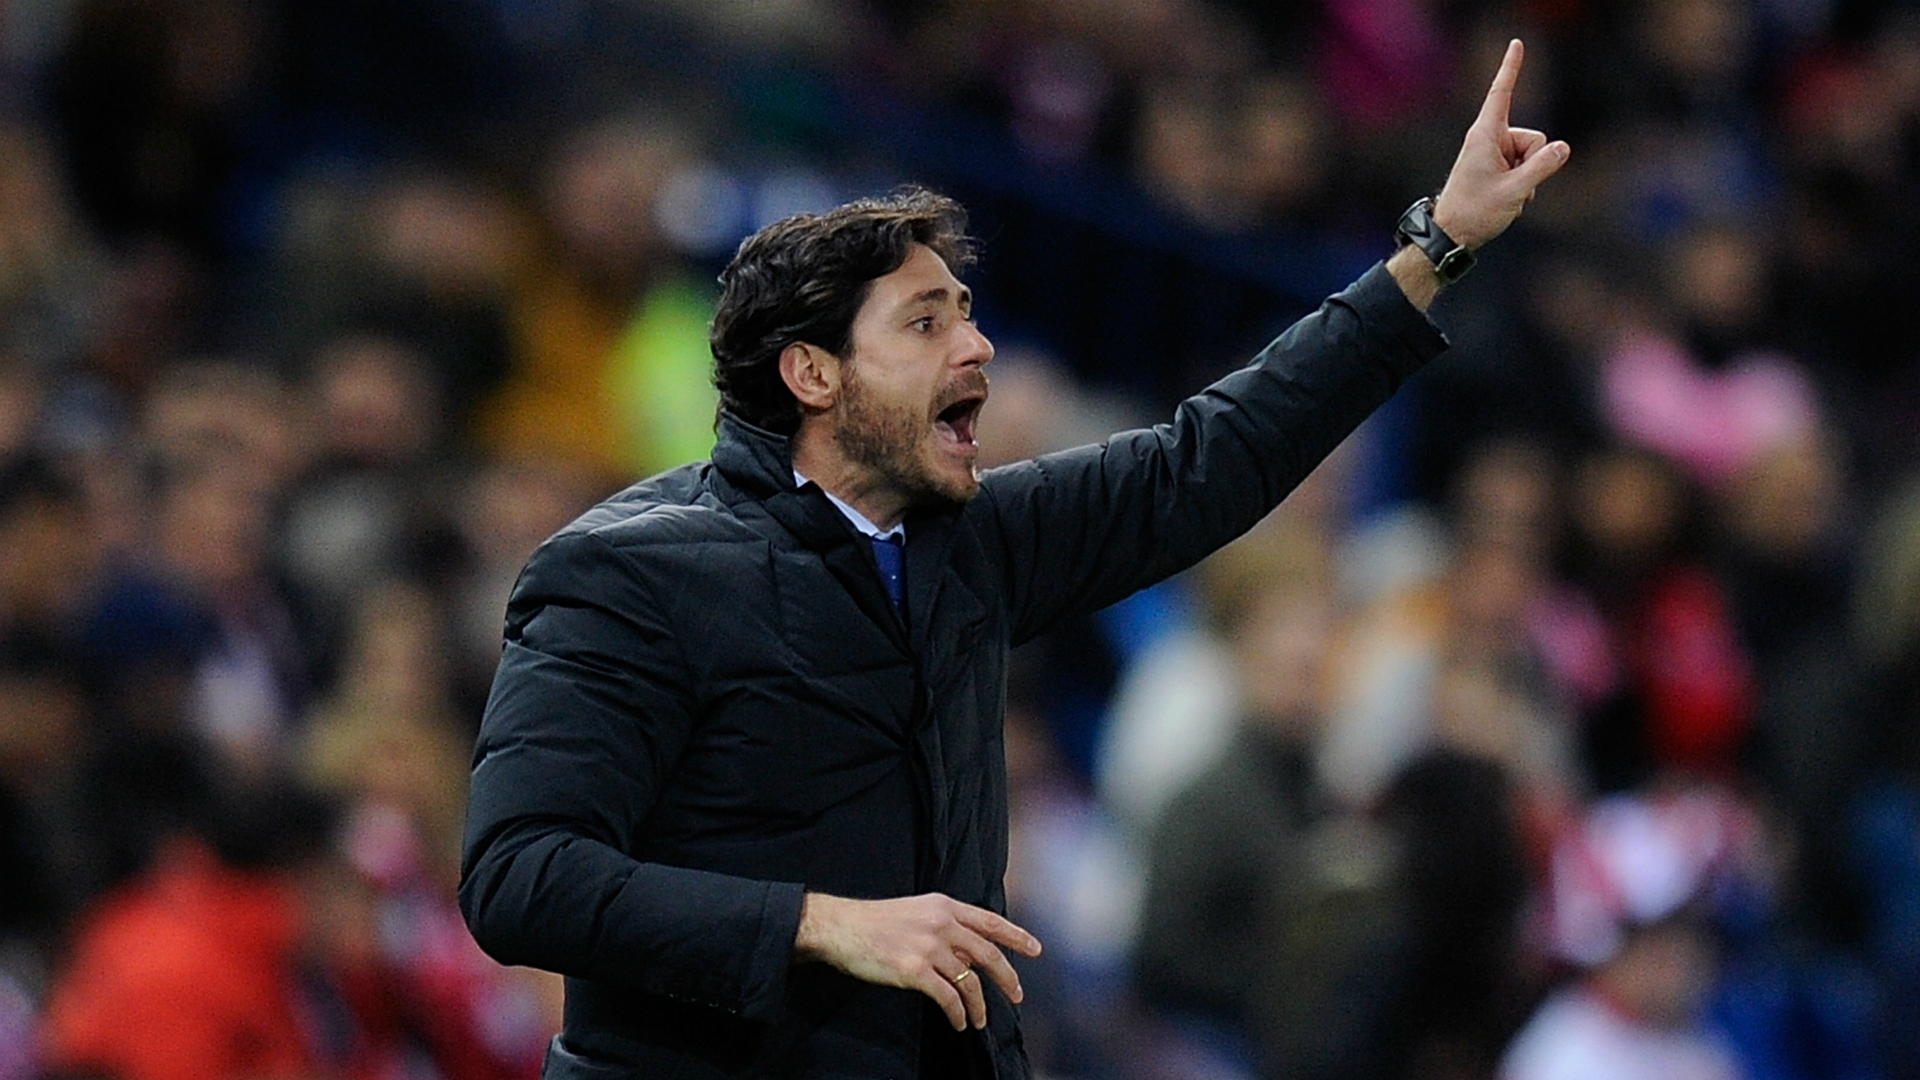 Malaga sack manager after explicit video causes 'serious damage'